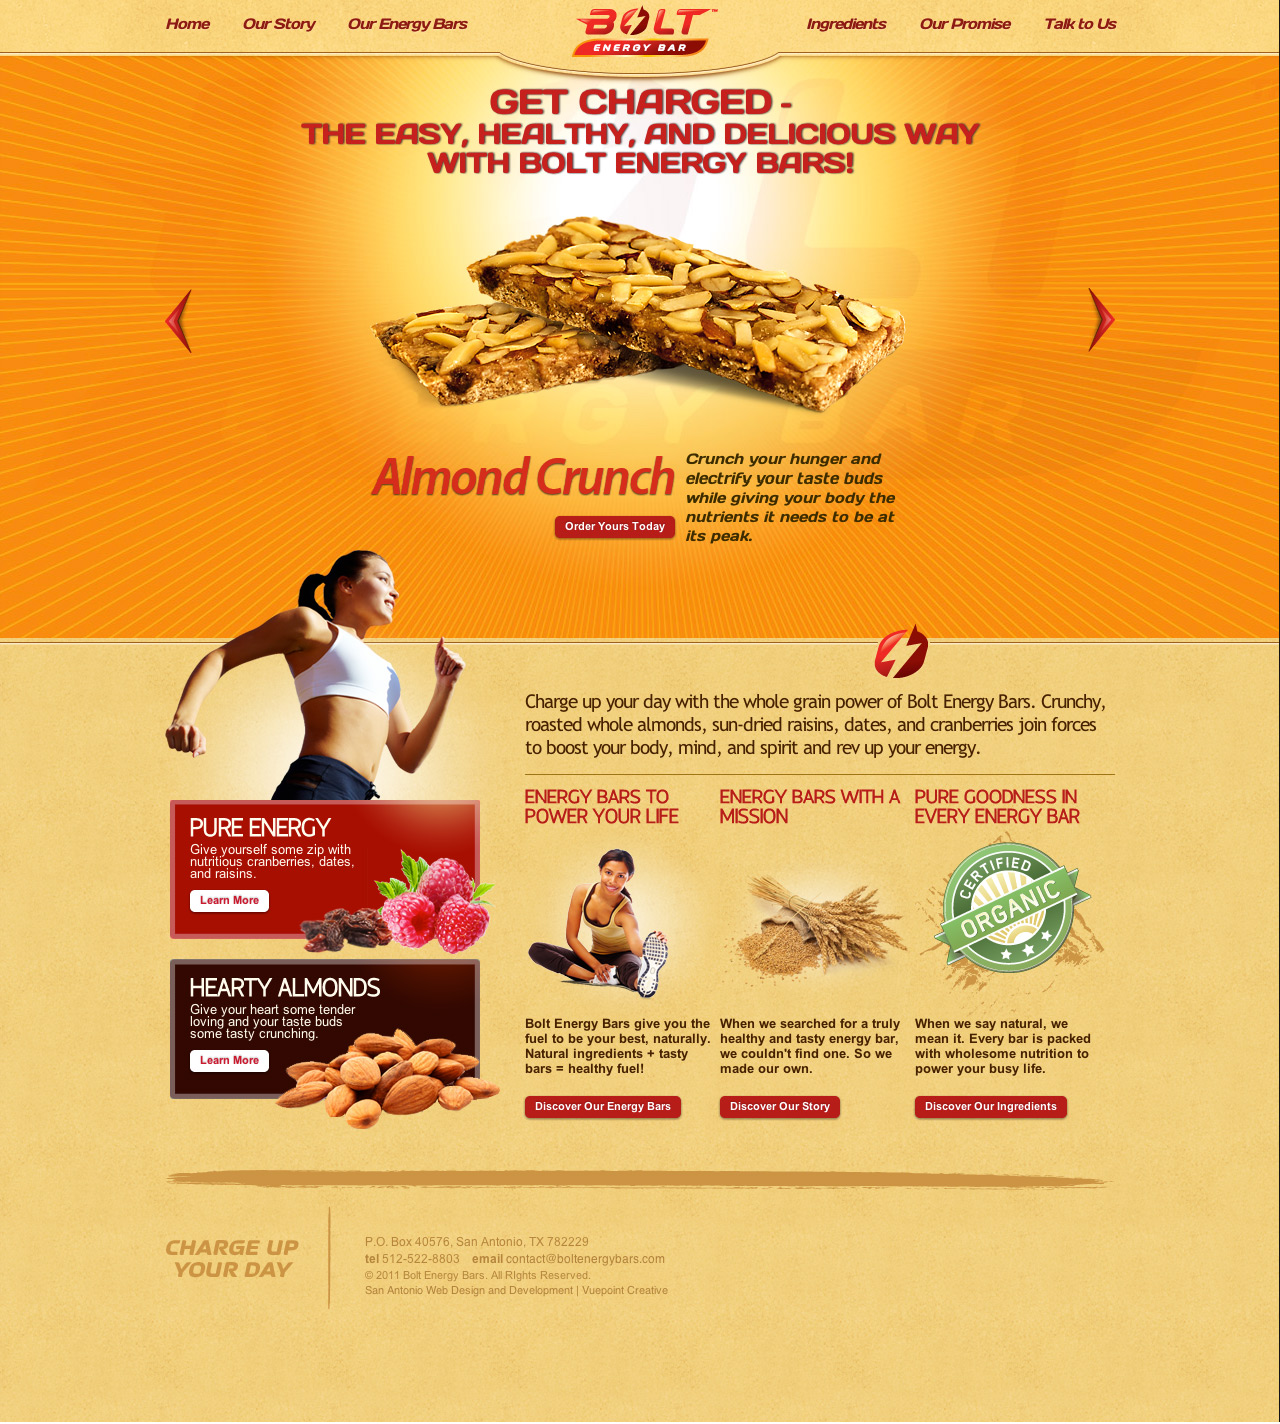 Web design home page for Bolt Energy Bars